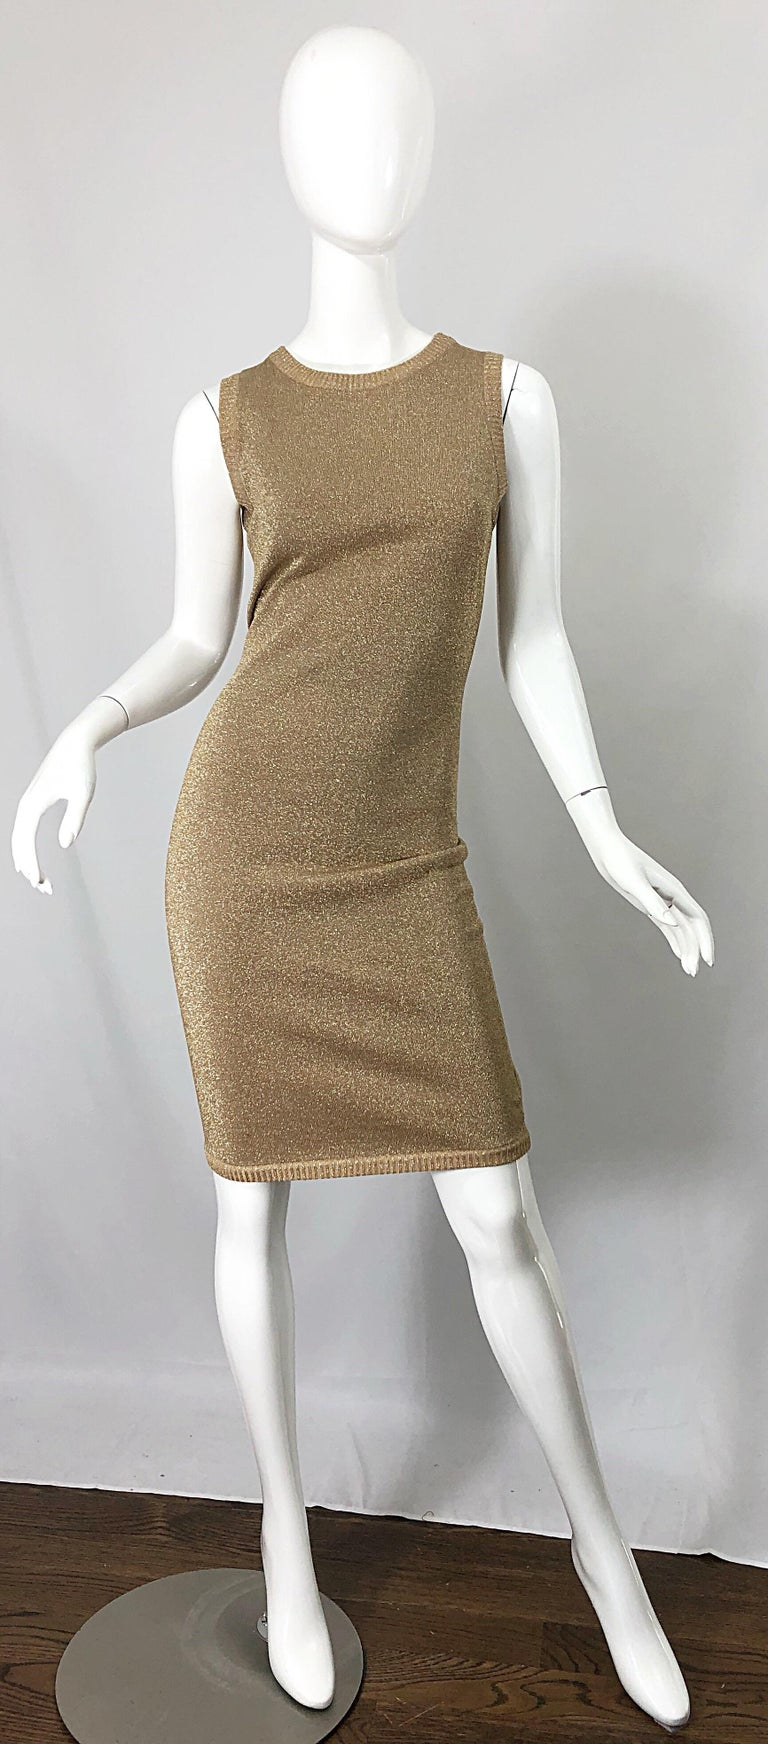 Sexy 1990s does 1960s MILA SCHOON gold metallic cut-out back bodycon dress! Features a soft Cotton blend that stretches to fit. Simply slips over the head. Cut-out back reveals just the right amount of skin. Great belted or alone with sandals,